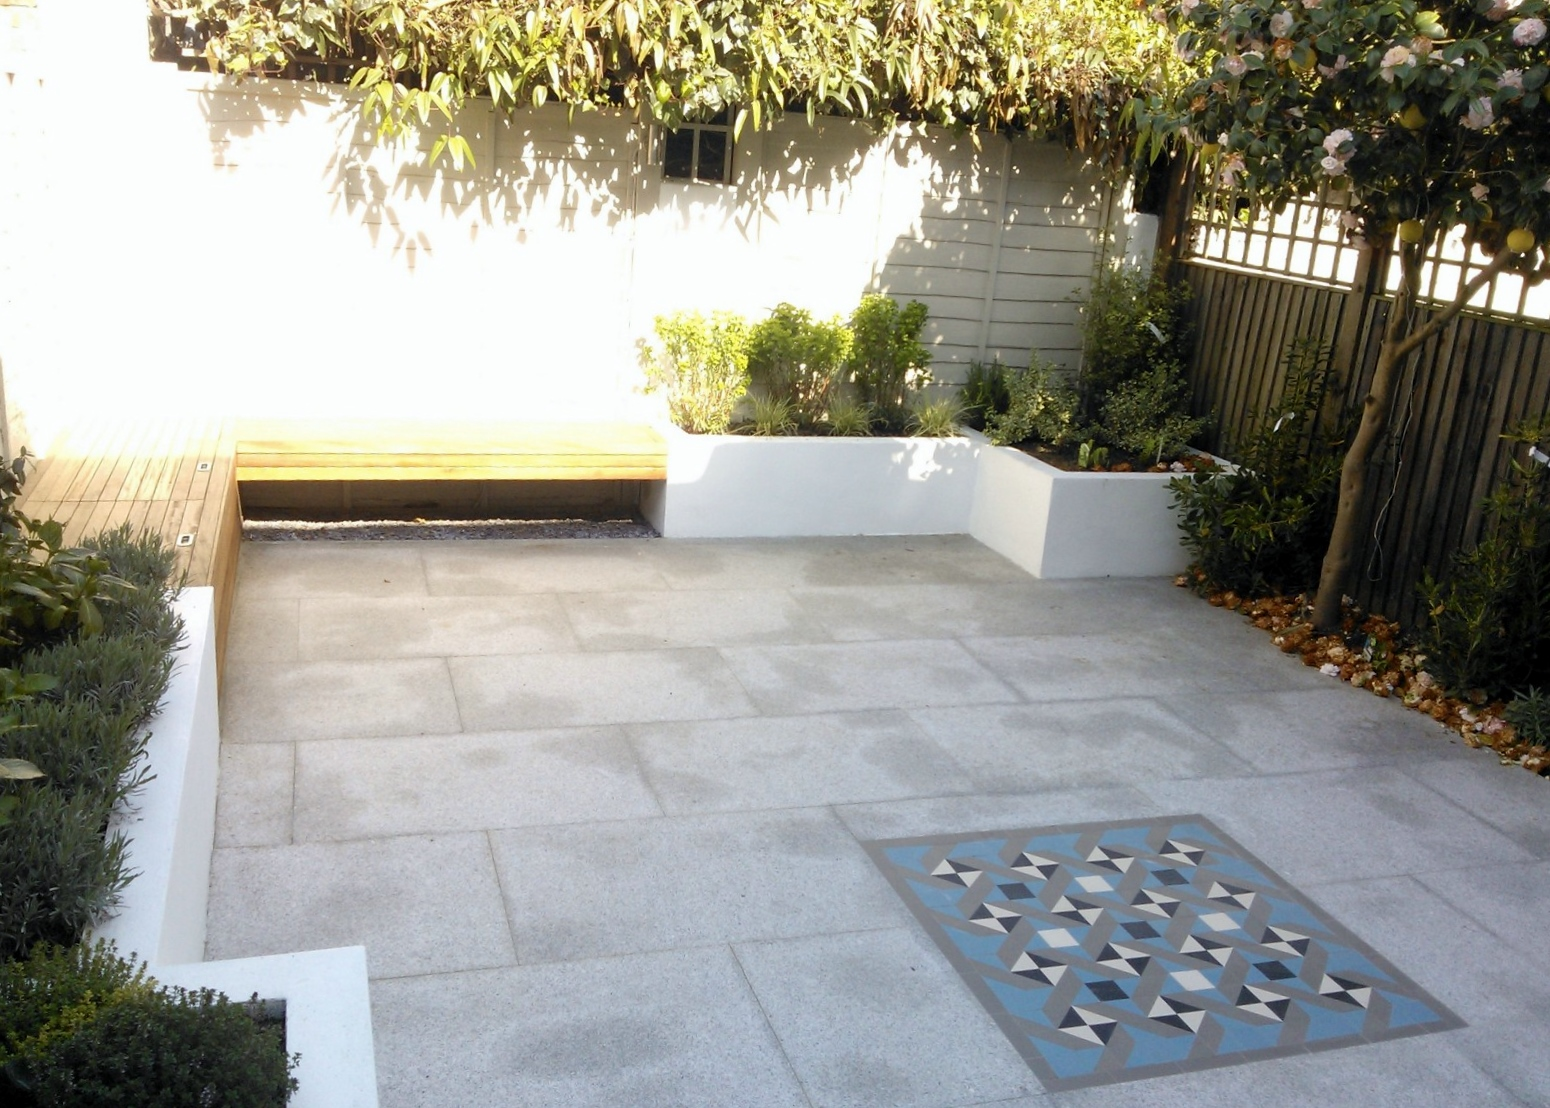 Modern London Garden Design Painted Fence Granite Paving Hardwood Bench Raised Painted beds architectural Planting West London (2)